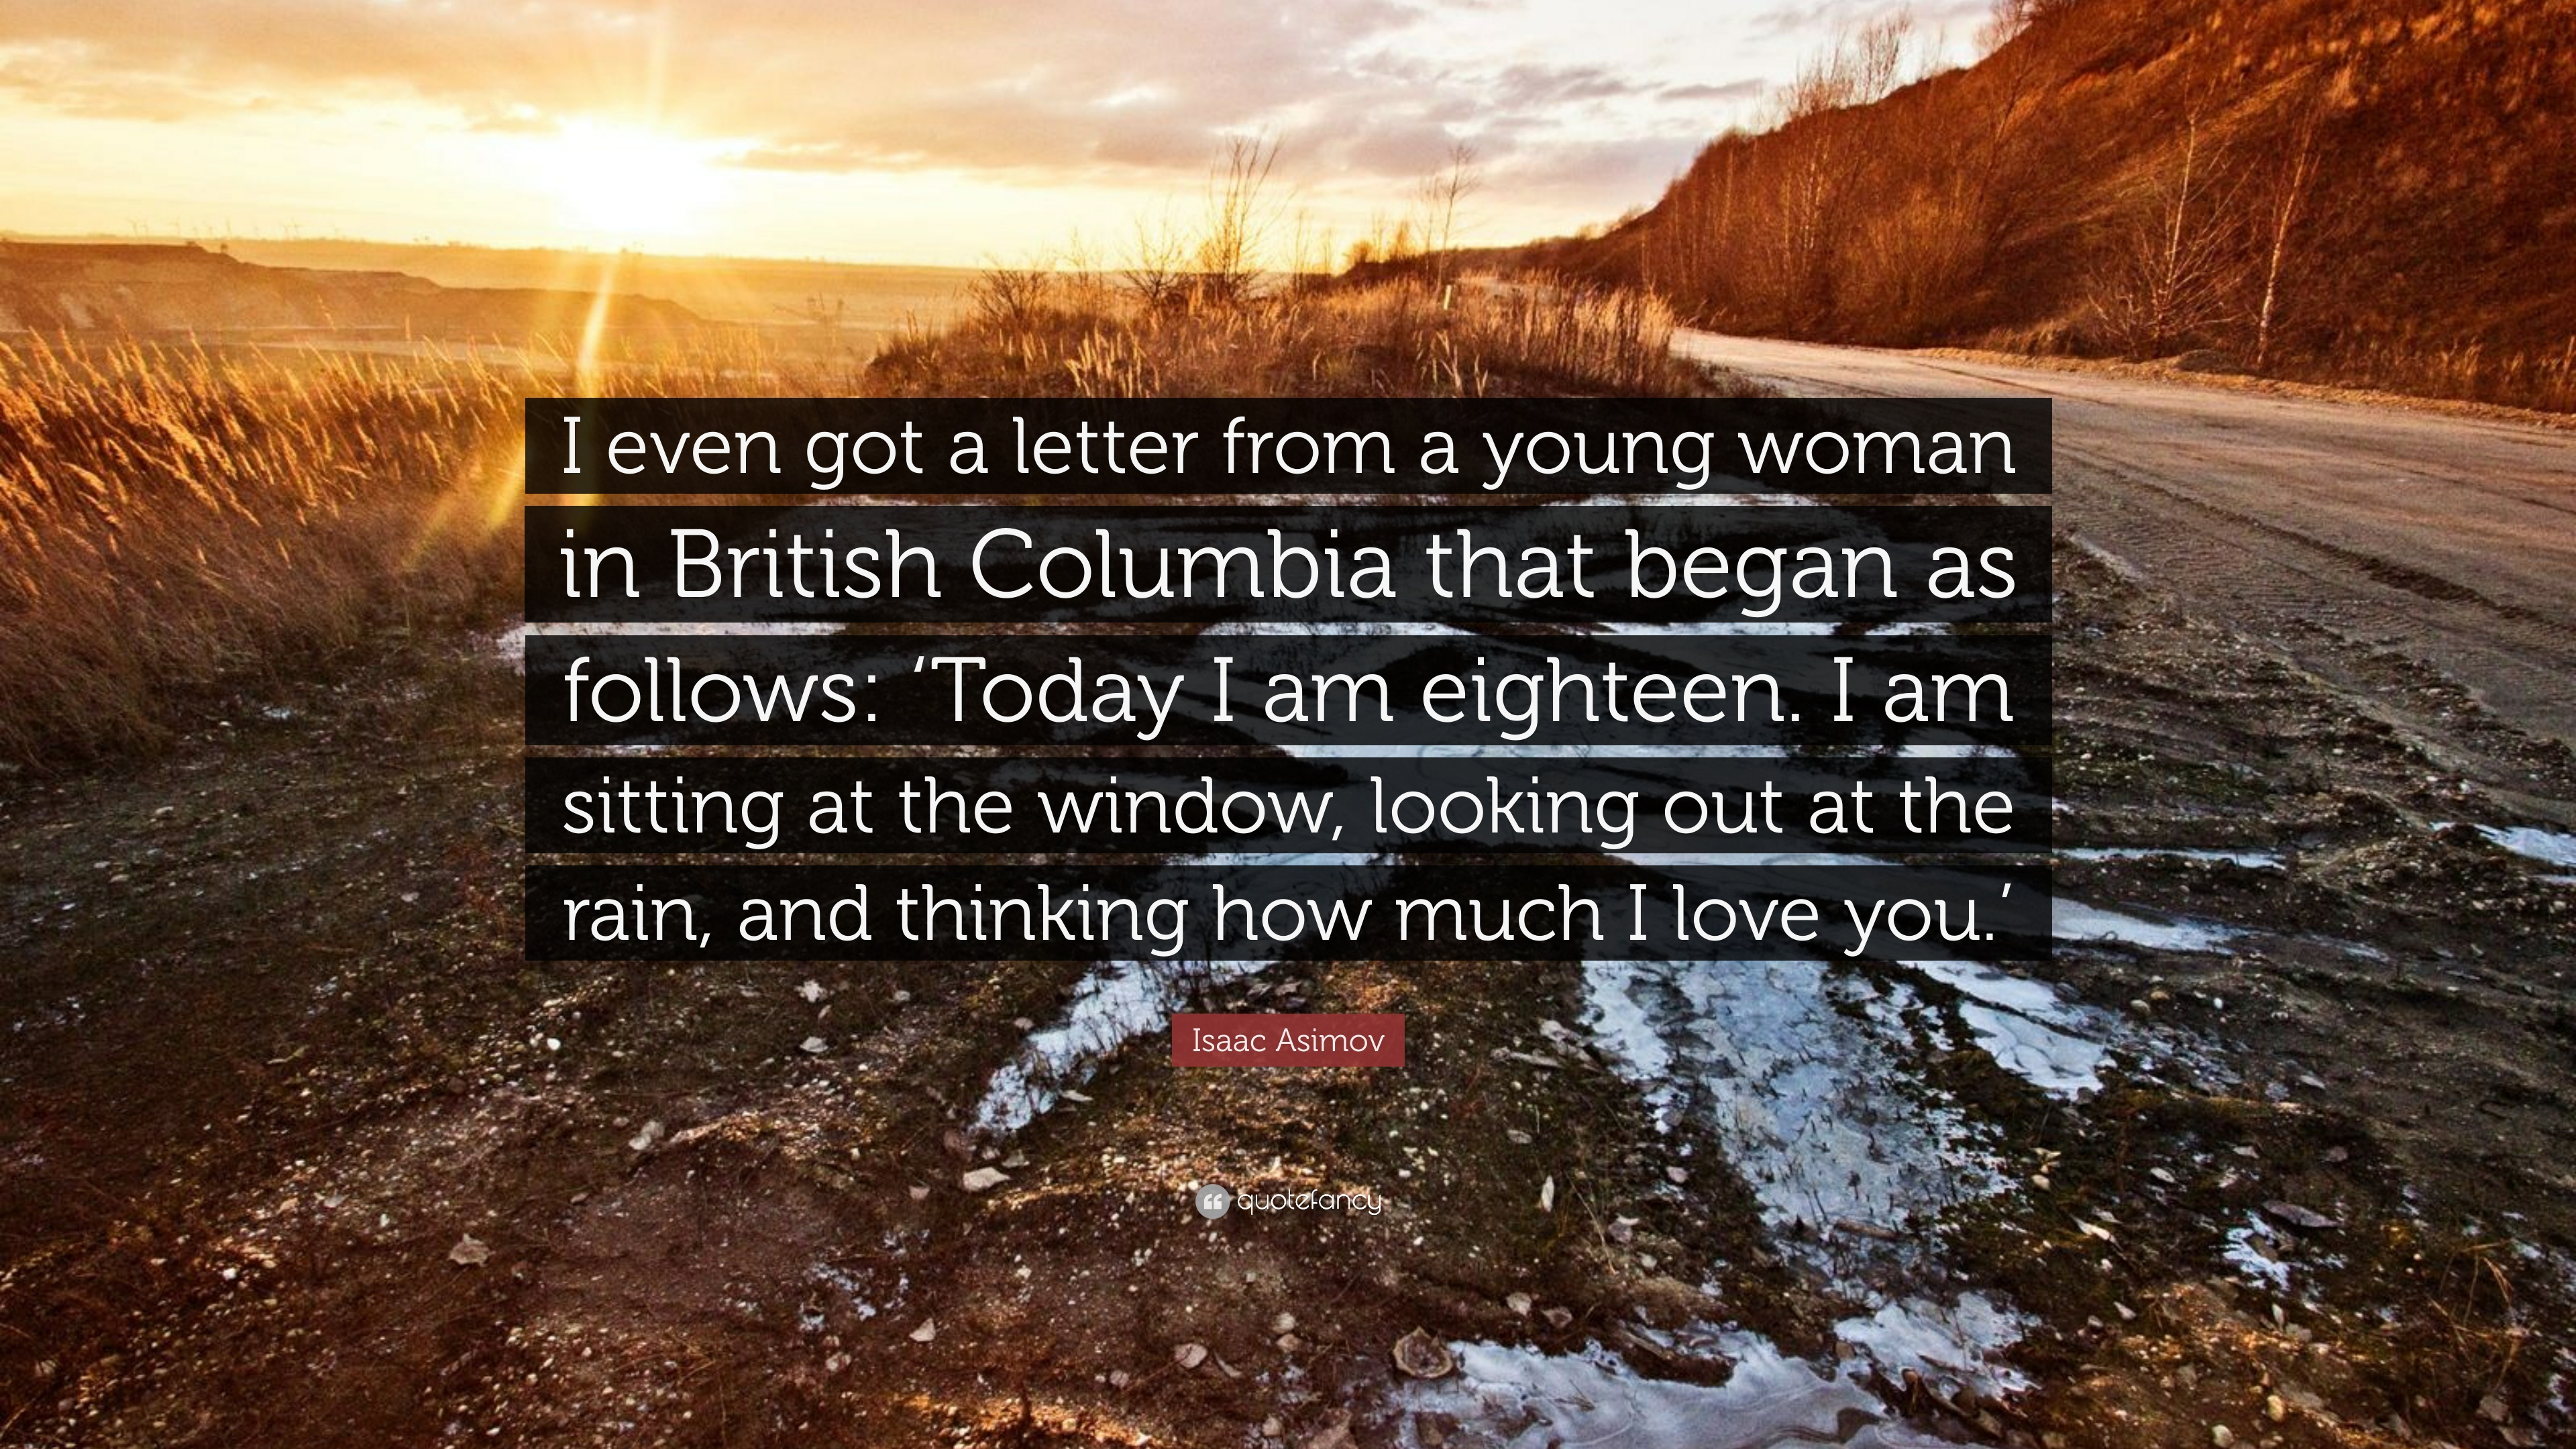 Isaac Asimov Quote: U201cI Even Got A Letter From A Young Woman In British